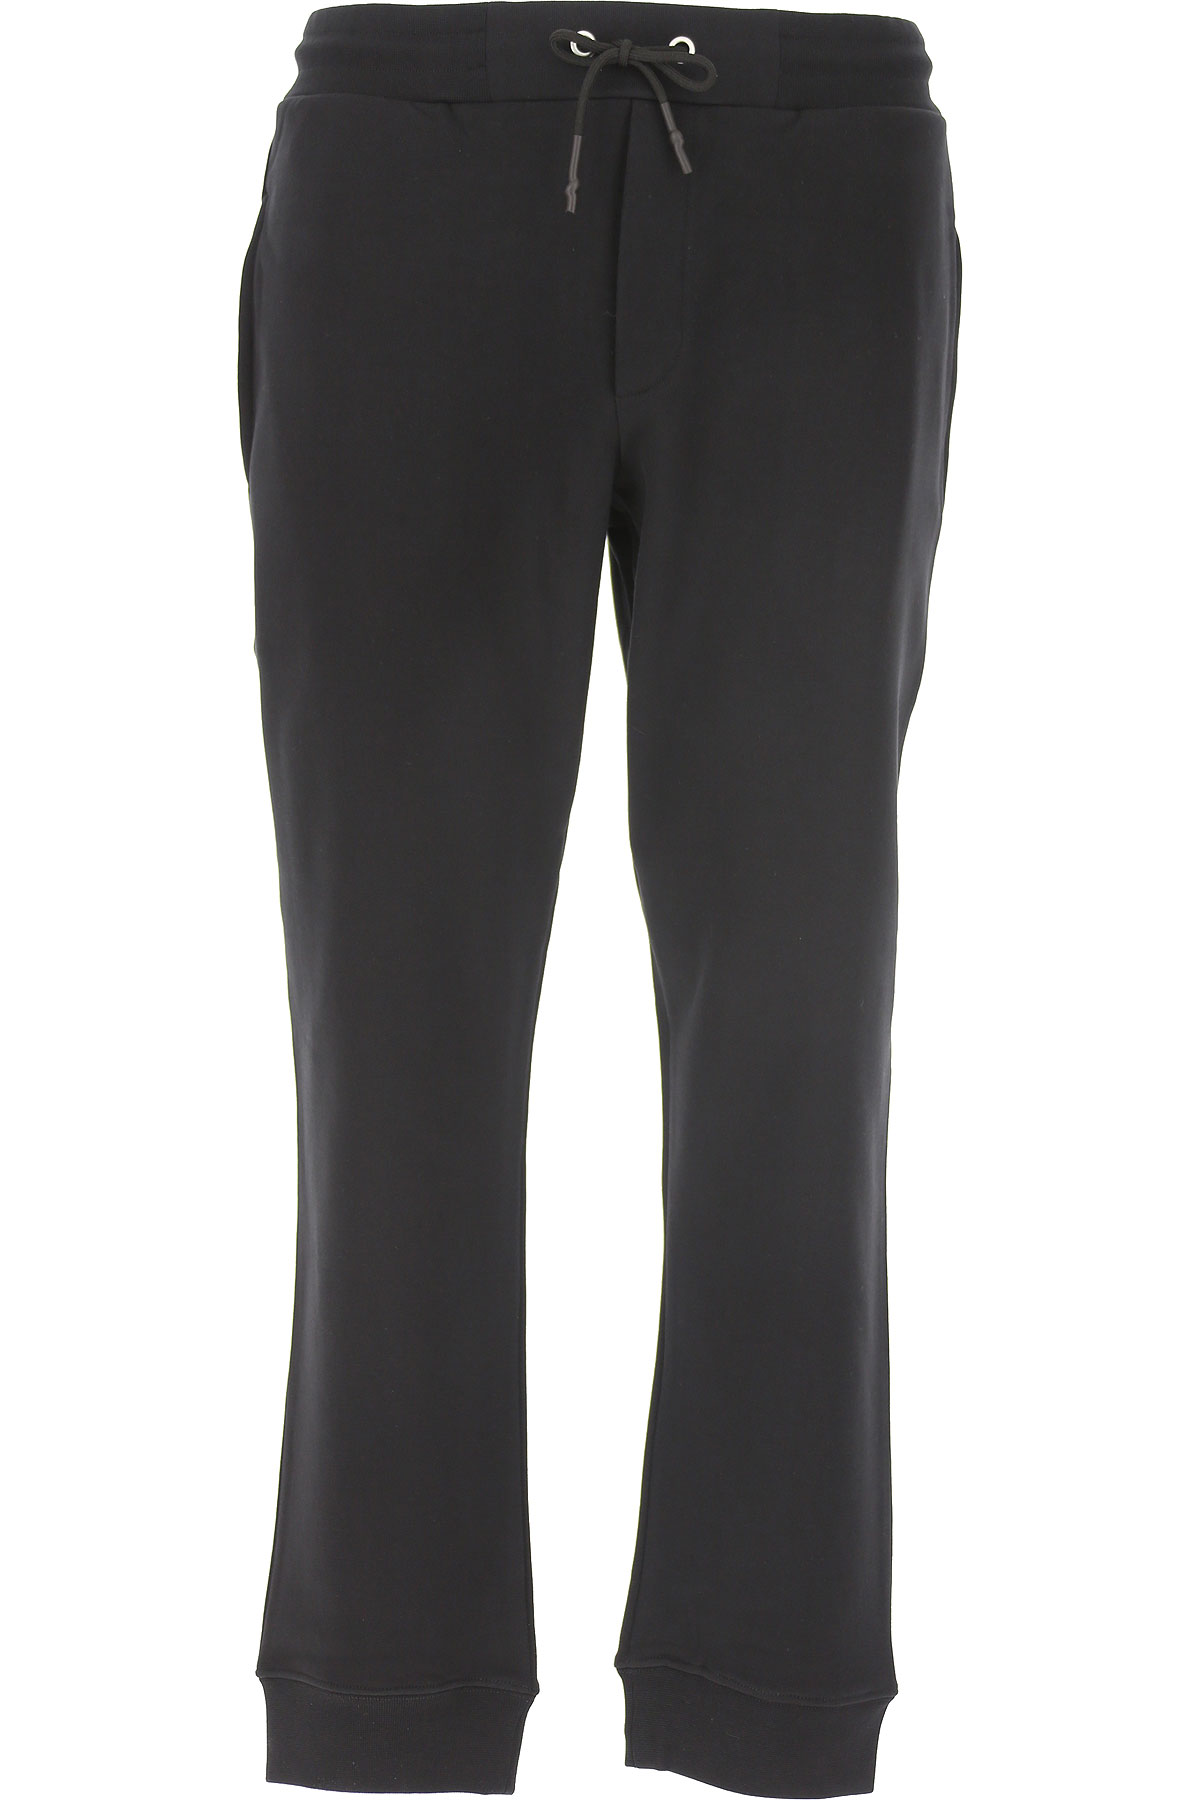 Alexander McQueen McQ Pants for Men On Sale in Outlet, Black, Cotton, 2019, L S